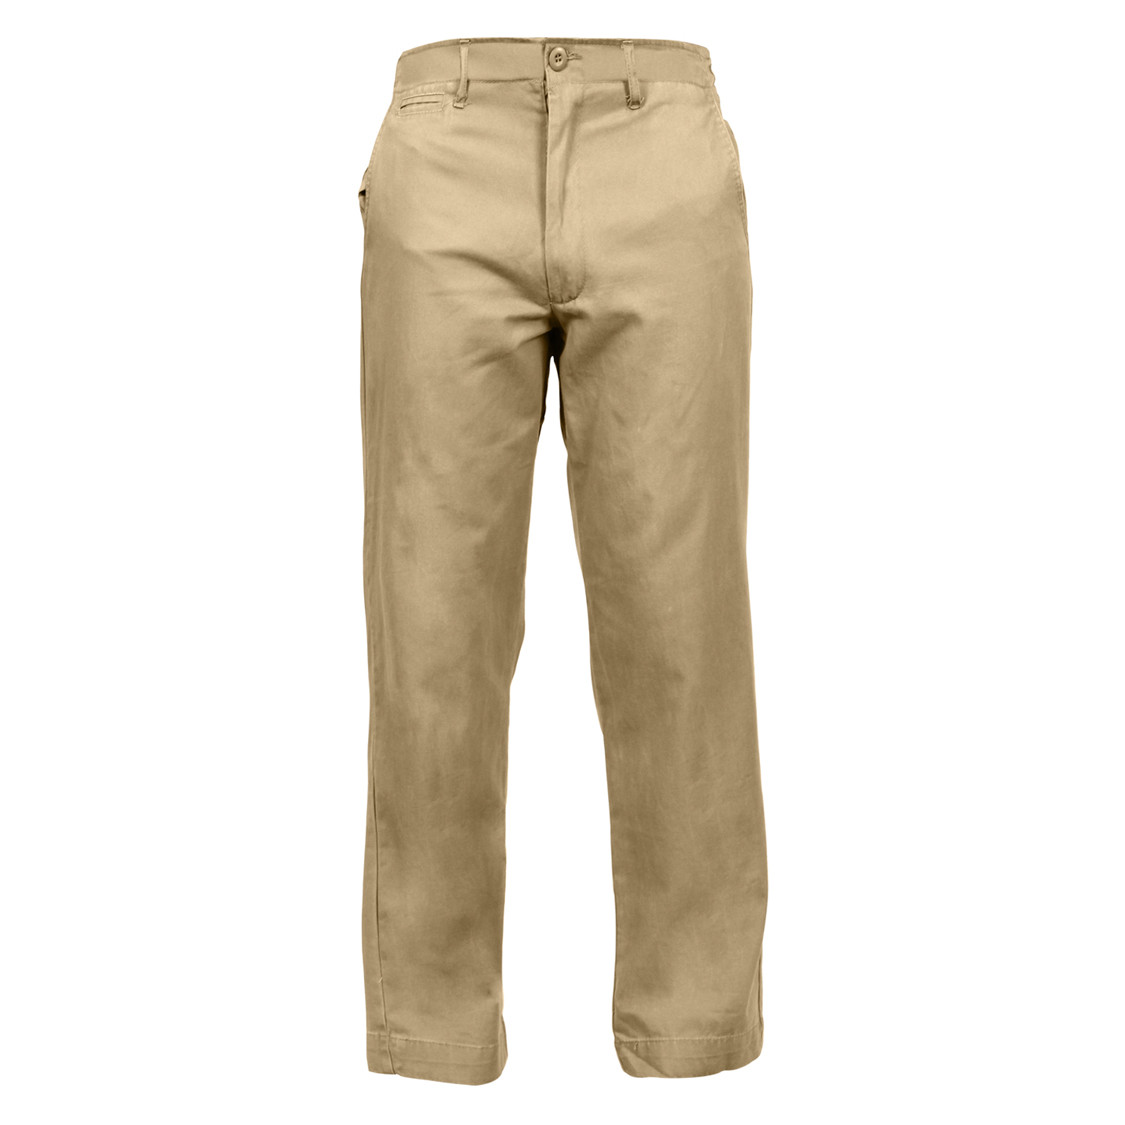 Shop Vintage Military Style Khaki Chinos - Fatigues Army Navy Gear 0a1e9a8faf6